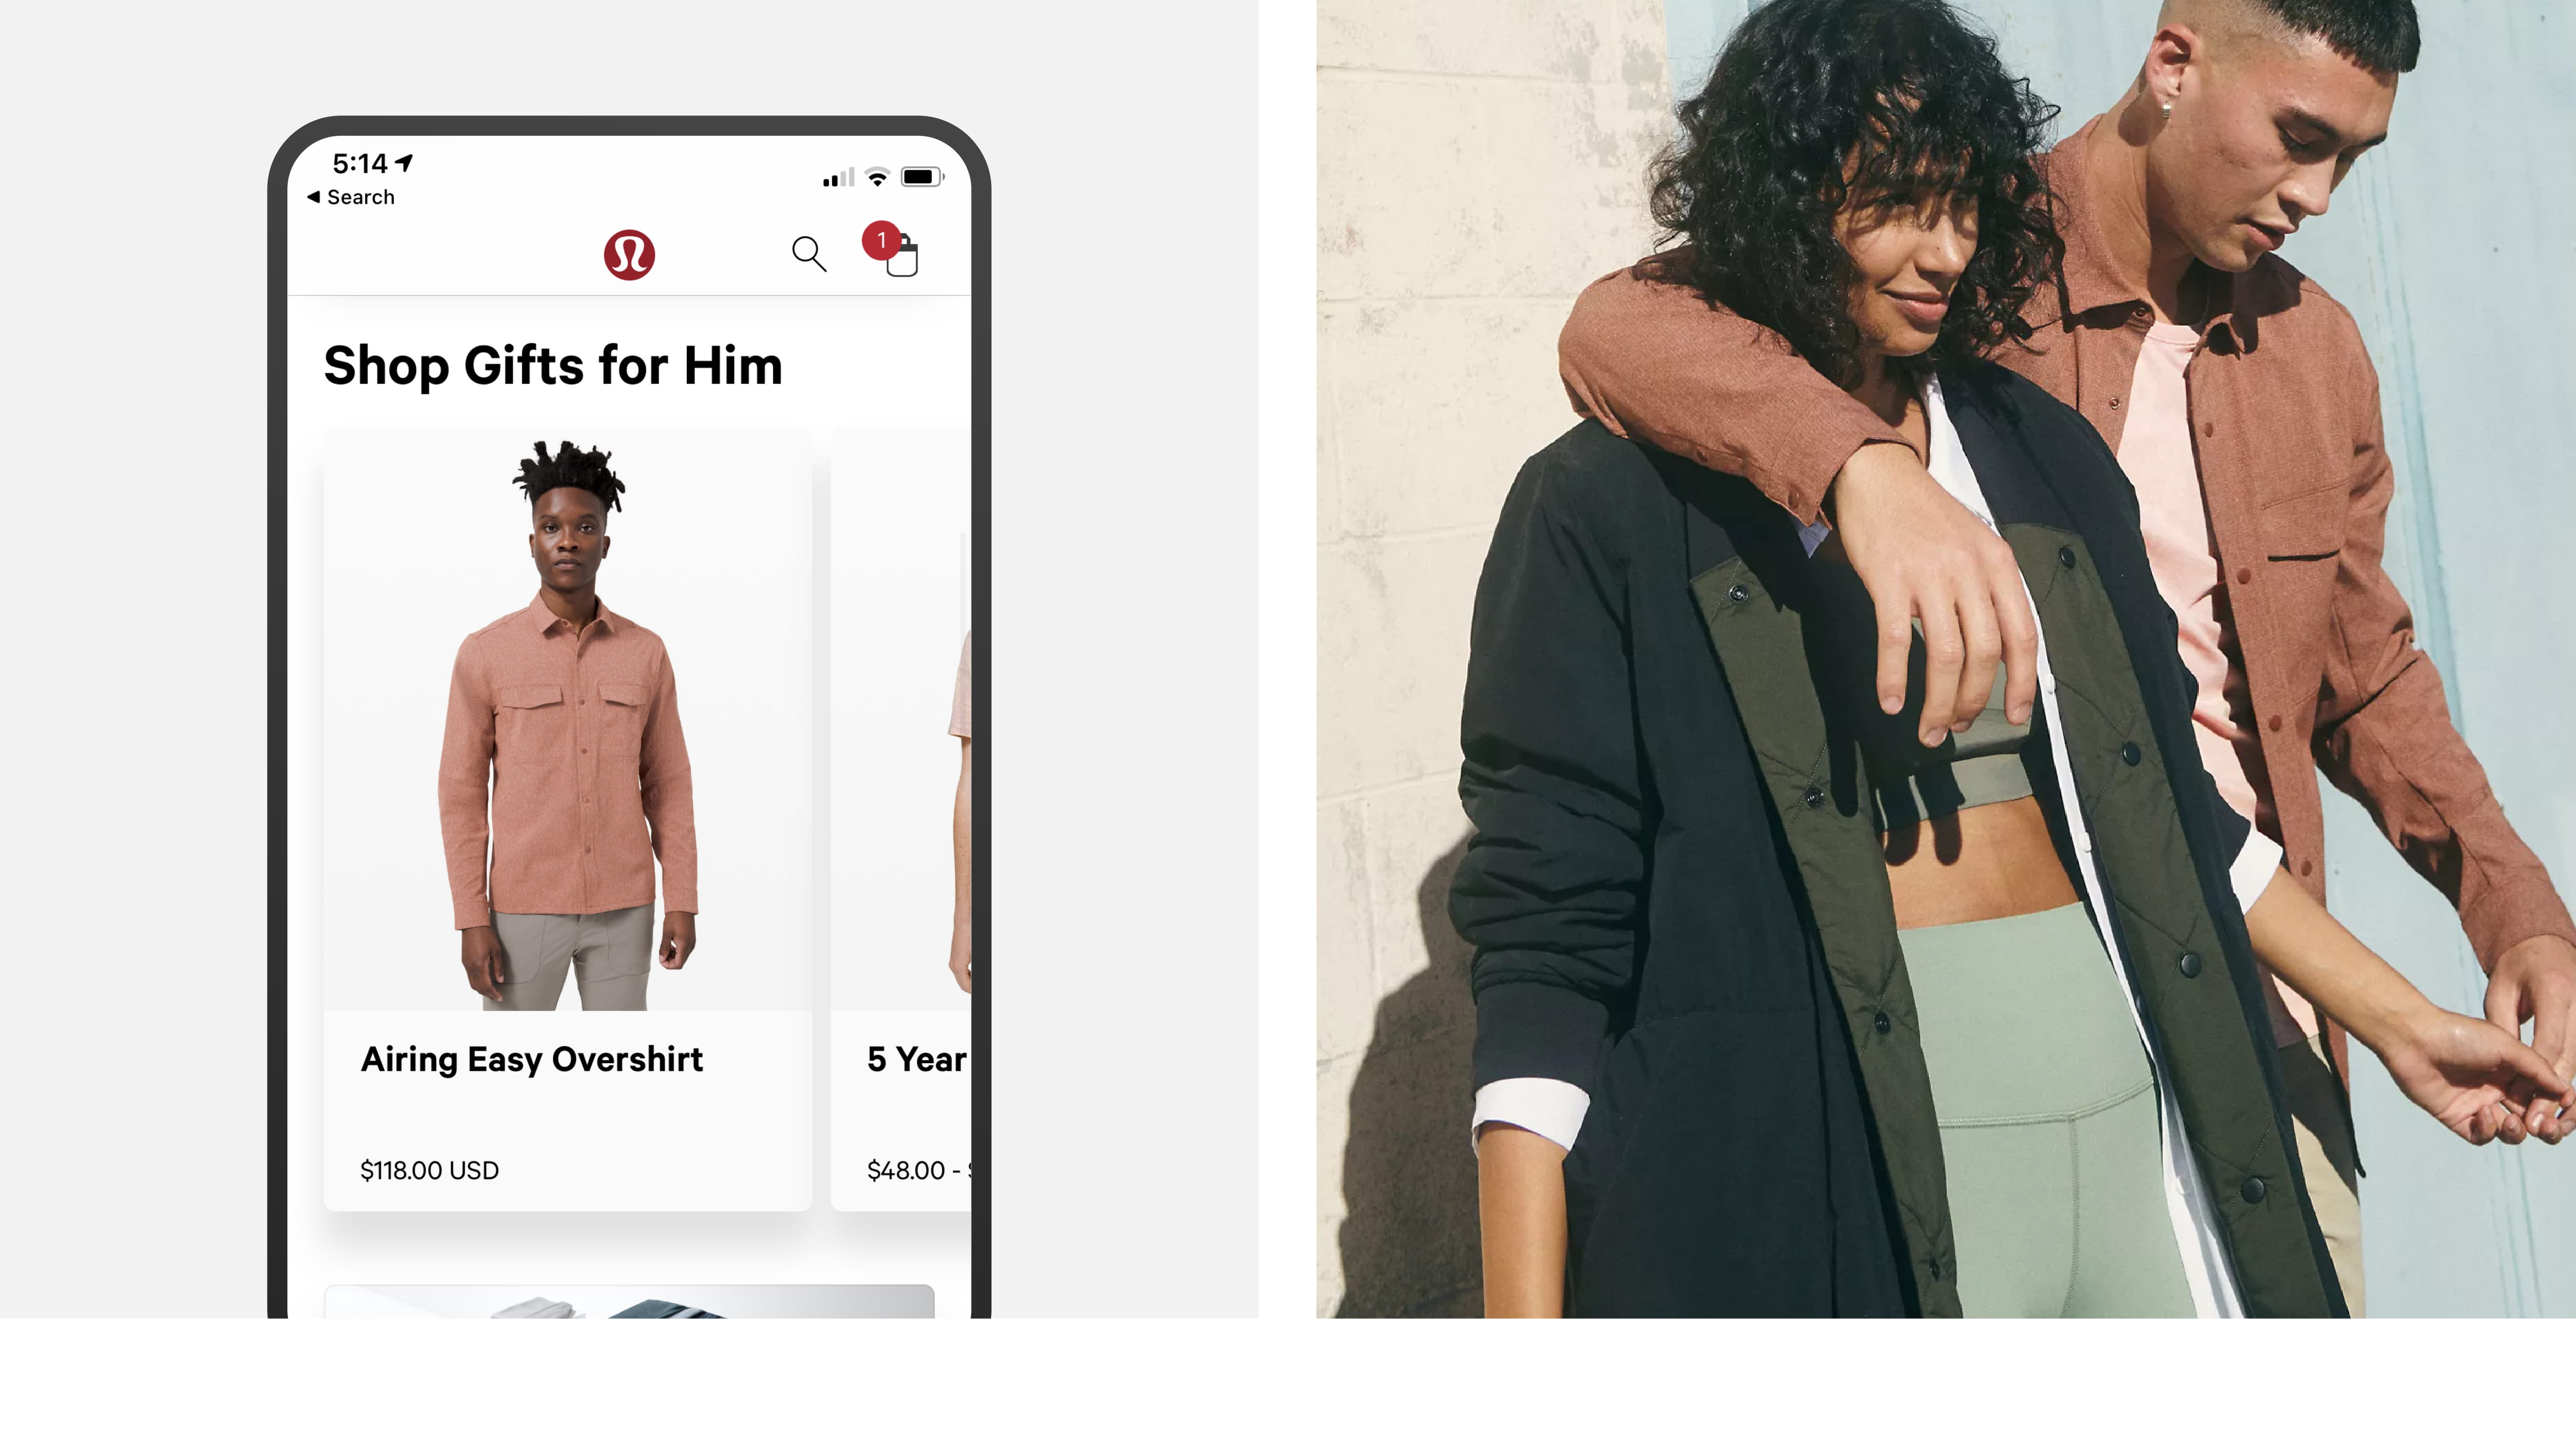 G & Co. - Lululemon Mobile App Development, Lululemon Development Agency, Lululemon Web Design Agency, Lululemon App Agency, Lululemon eCommerce Agency, Lululemon UI/UX Agency, Lululemon Digital Agency, Lululemon Marketing Agency